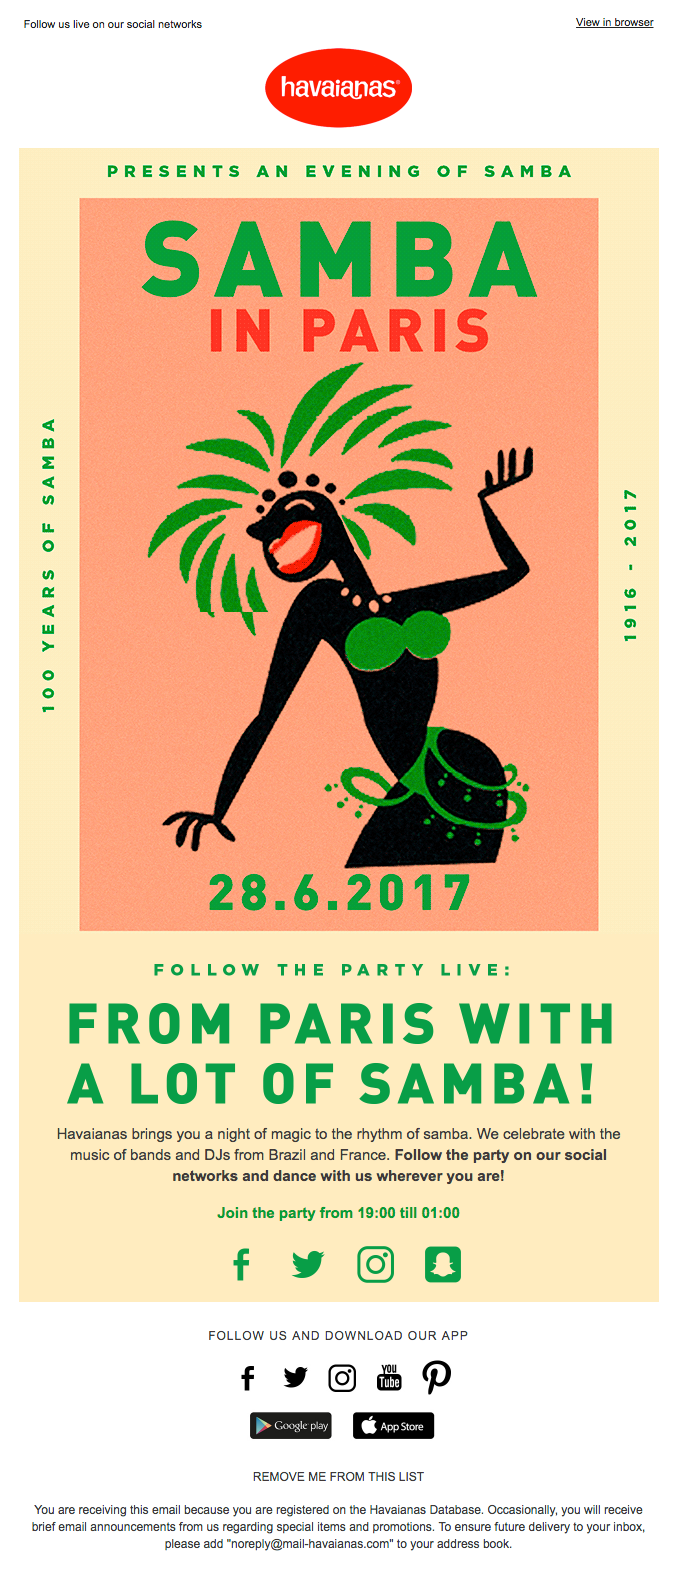 Havaianas invites you to its Samba in Paris event